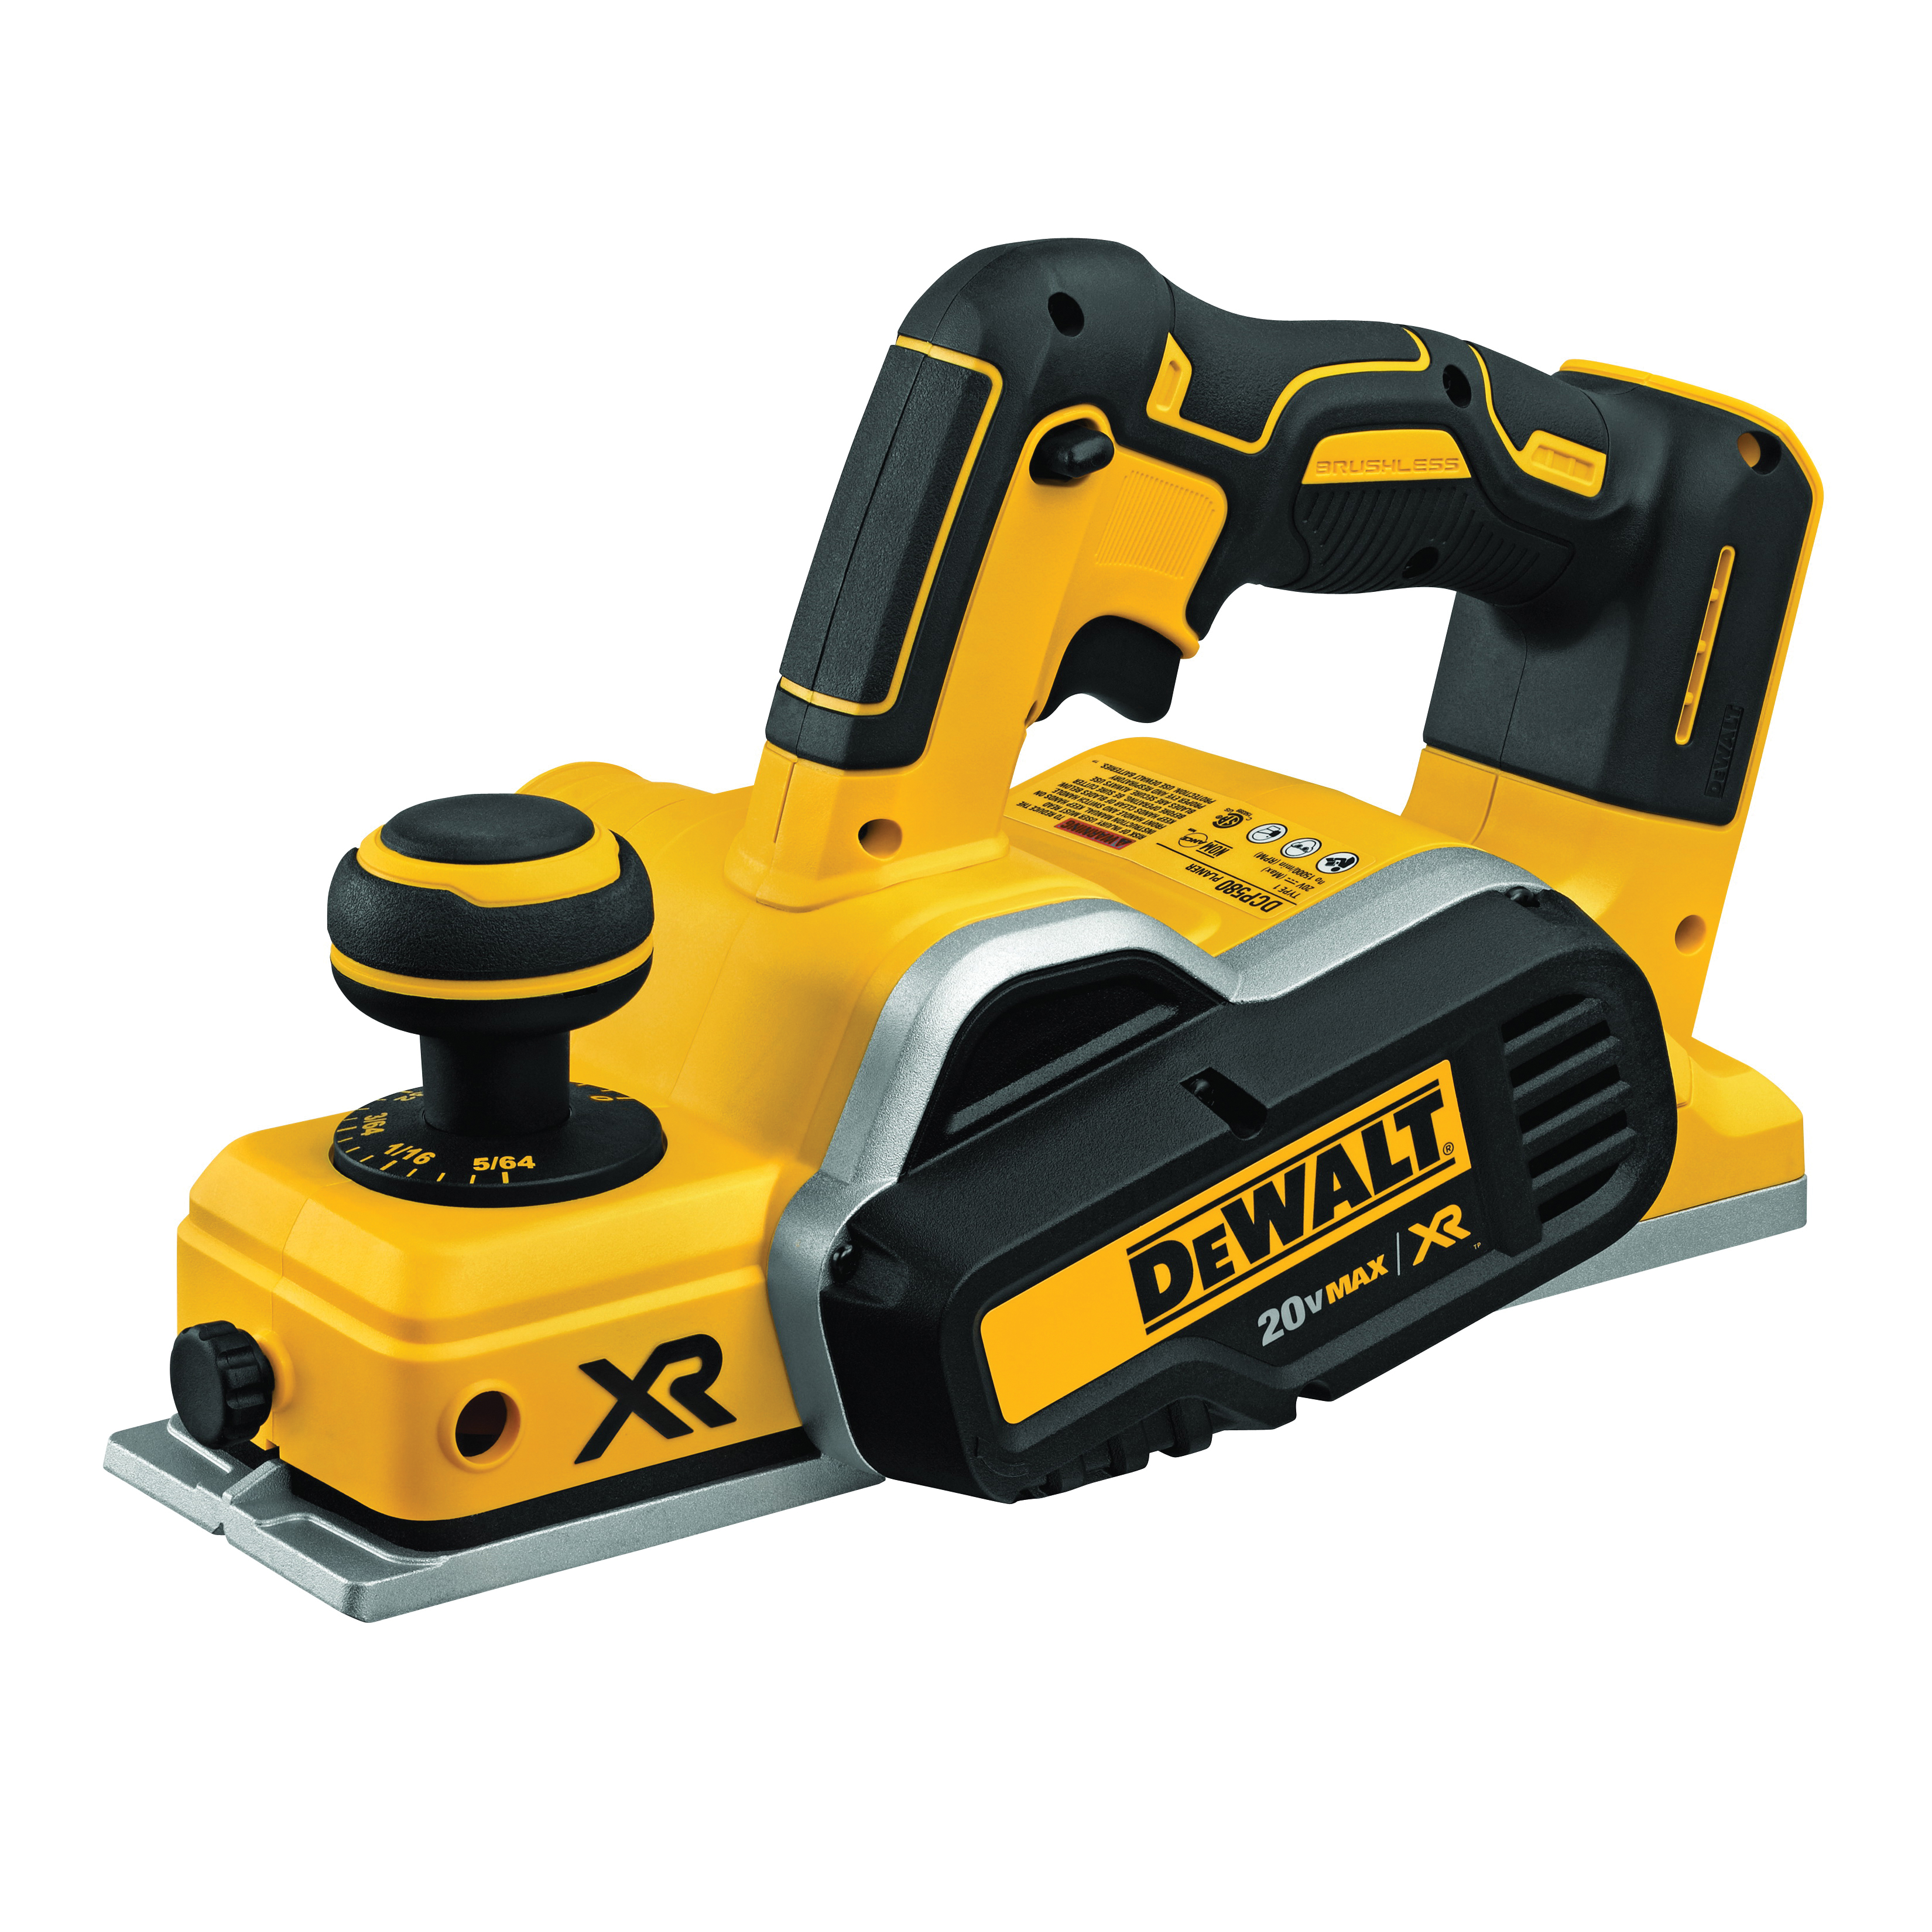 Picture of DeWALT DCP580B Brushless Planer, Bare Tool, 20 V Battery, 3-1/4 in W Planning, 15000 rpm No Load